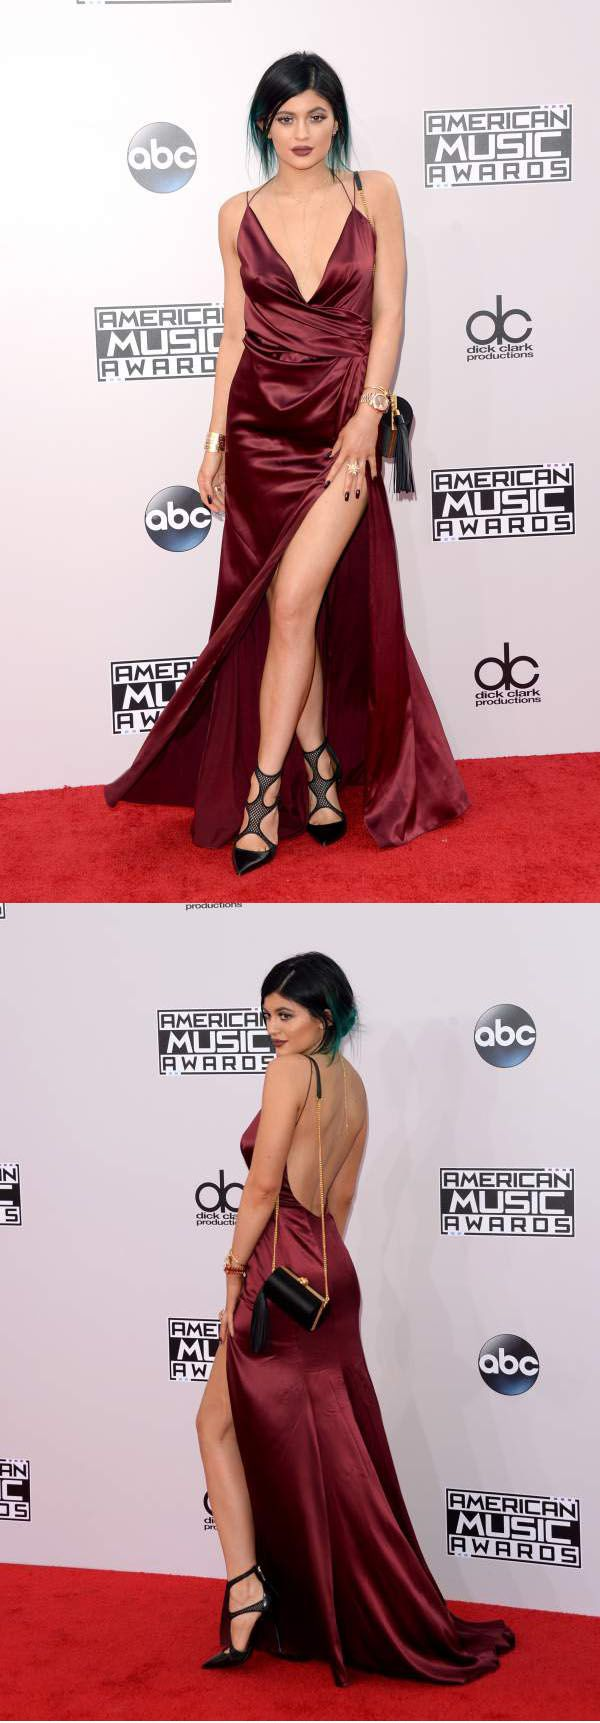 Kylie Jenner looked absolutely stunning at the 2014 American Music Awards